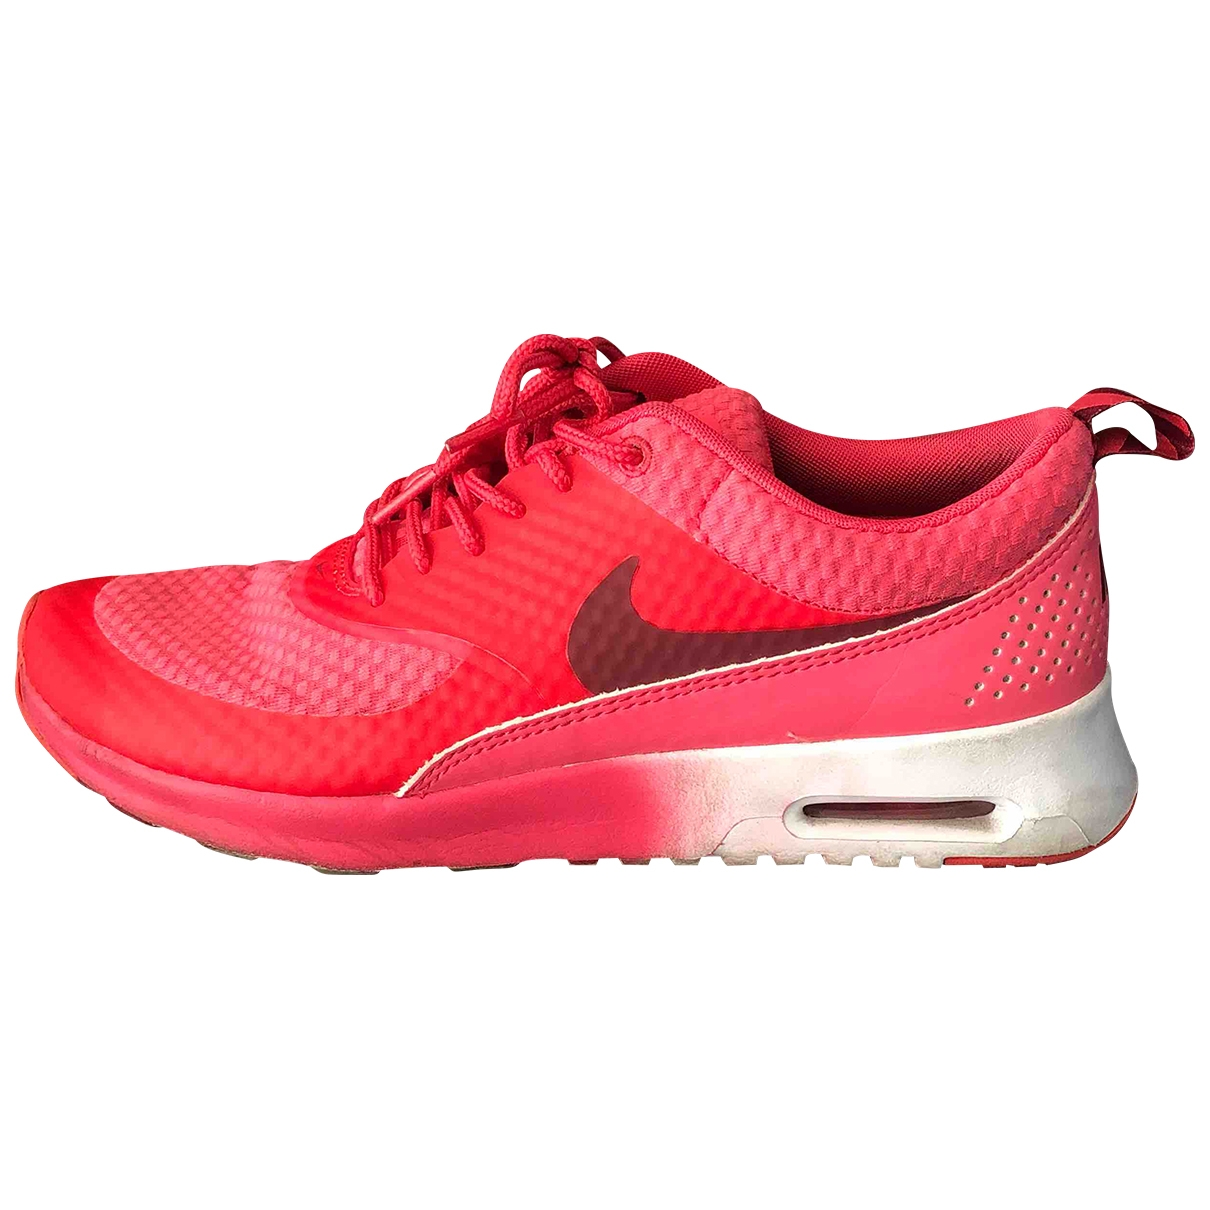 Nike Air Max  Pink Cloth Trainers for Women 40 EU